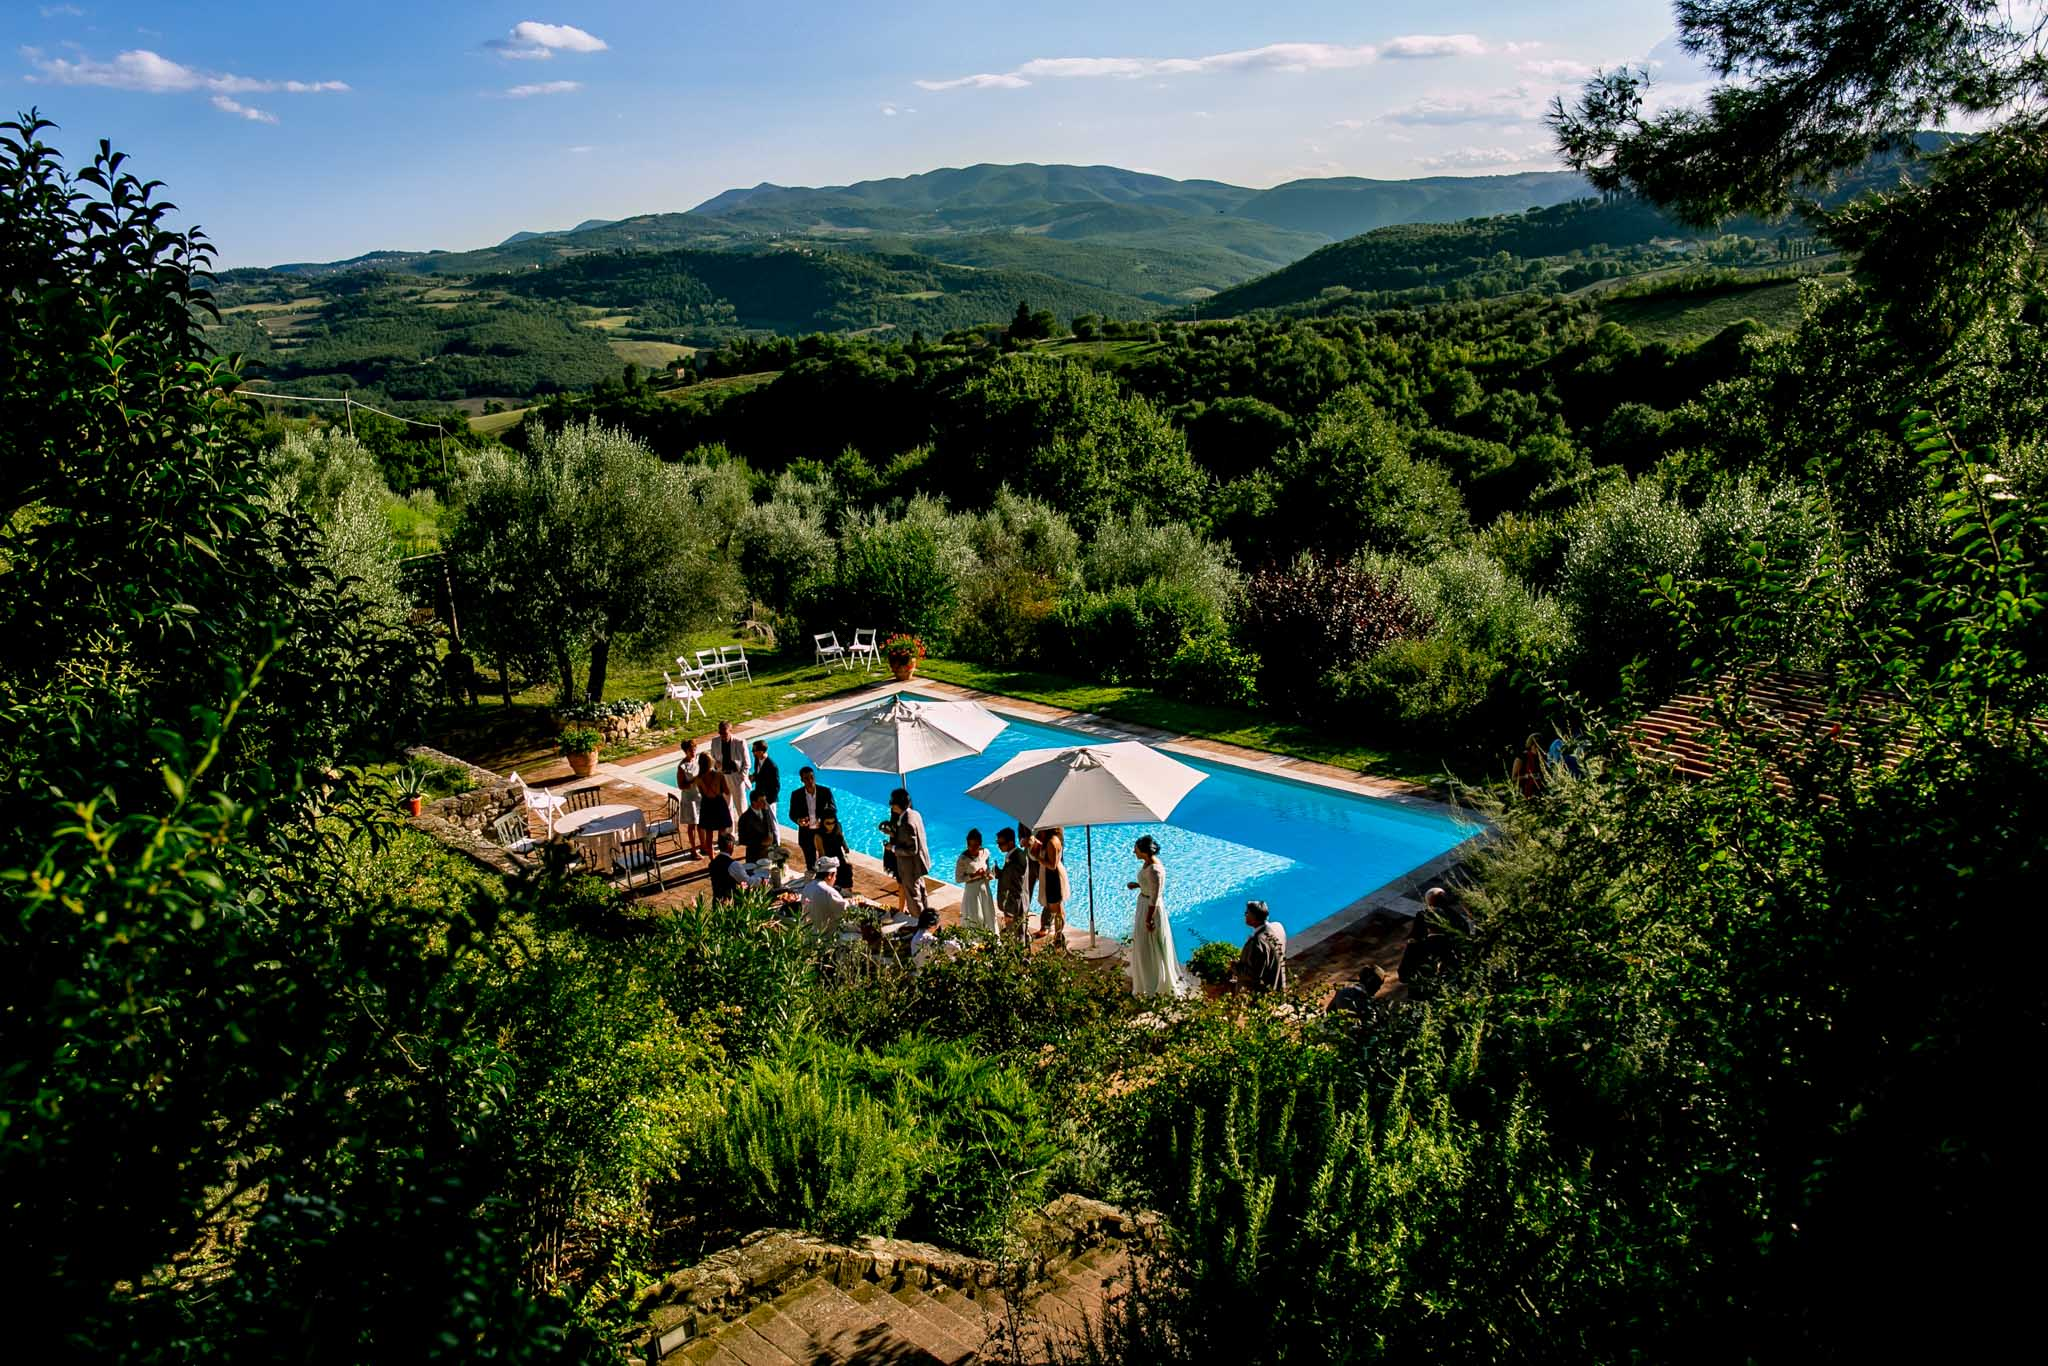 Pool side wedding reception party at Villa Tre Grazie in Umbria Italy near Todi